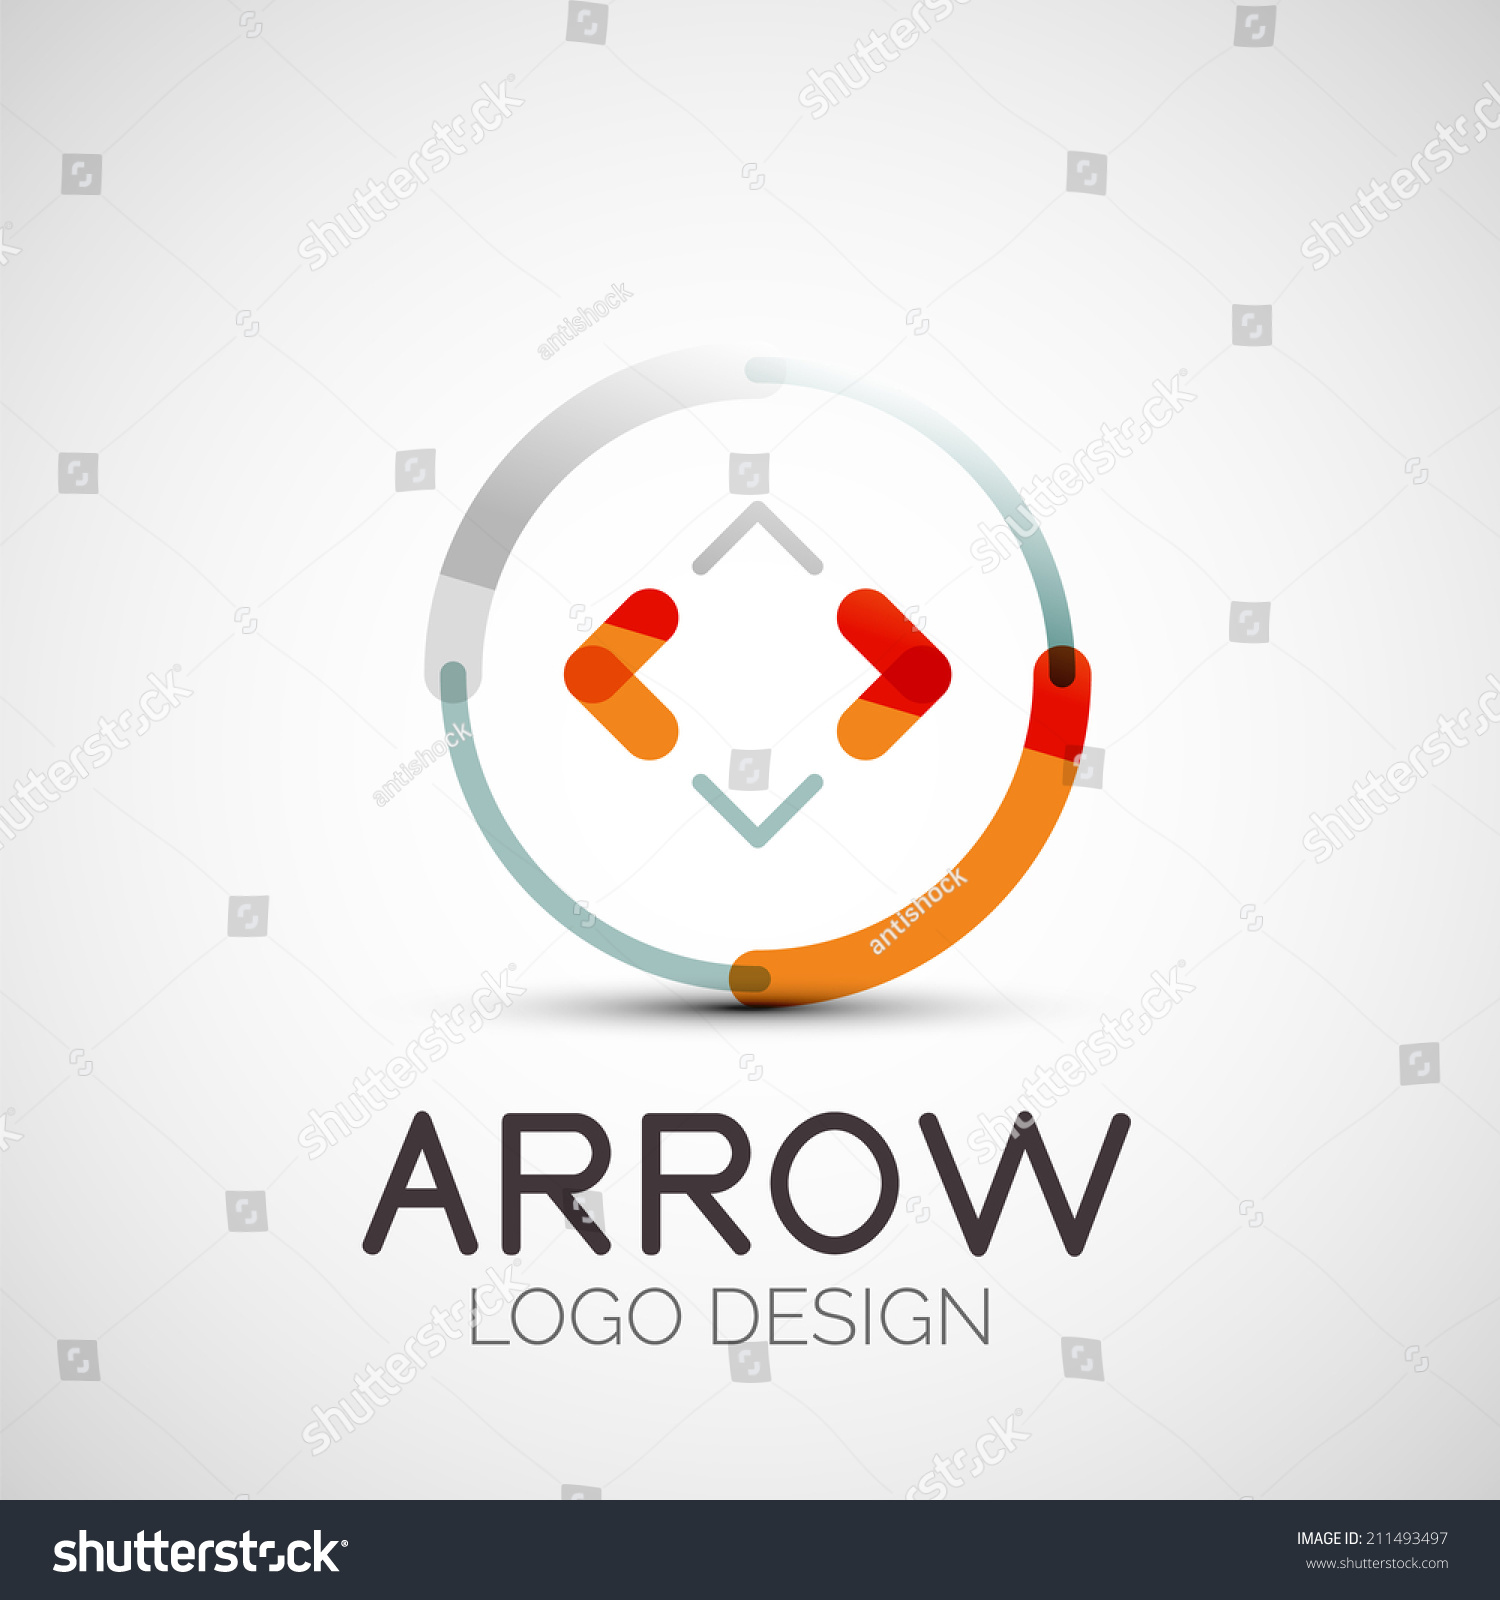 Modern Professional It Company Logo Design For Concept: Vector Arrow Company Logo, Abstract Business Symbol